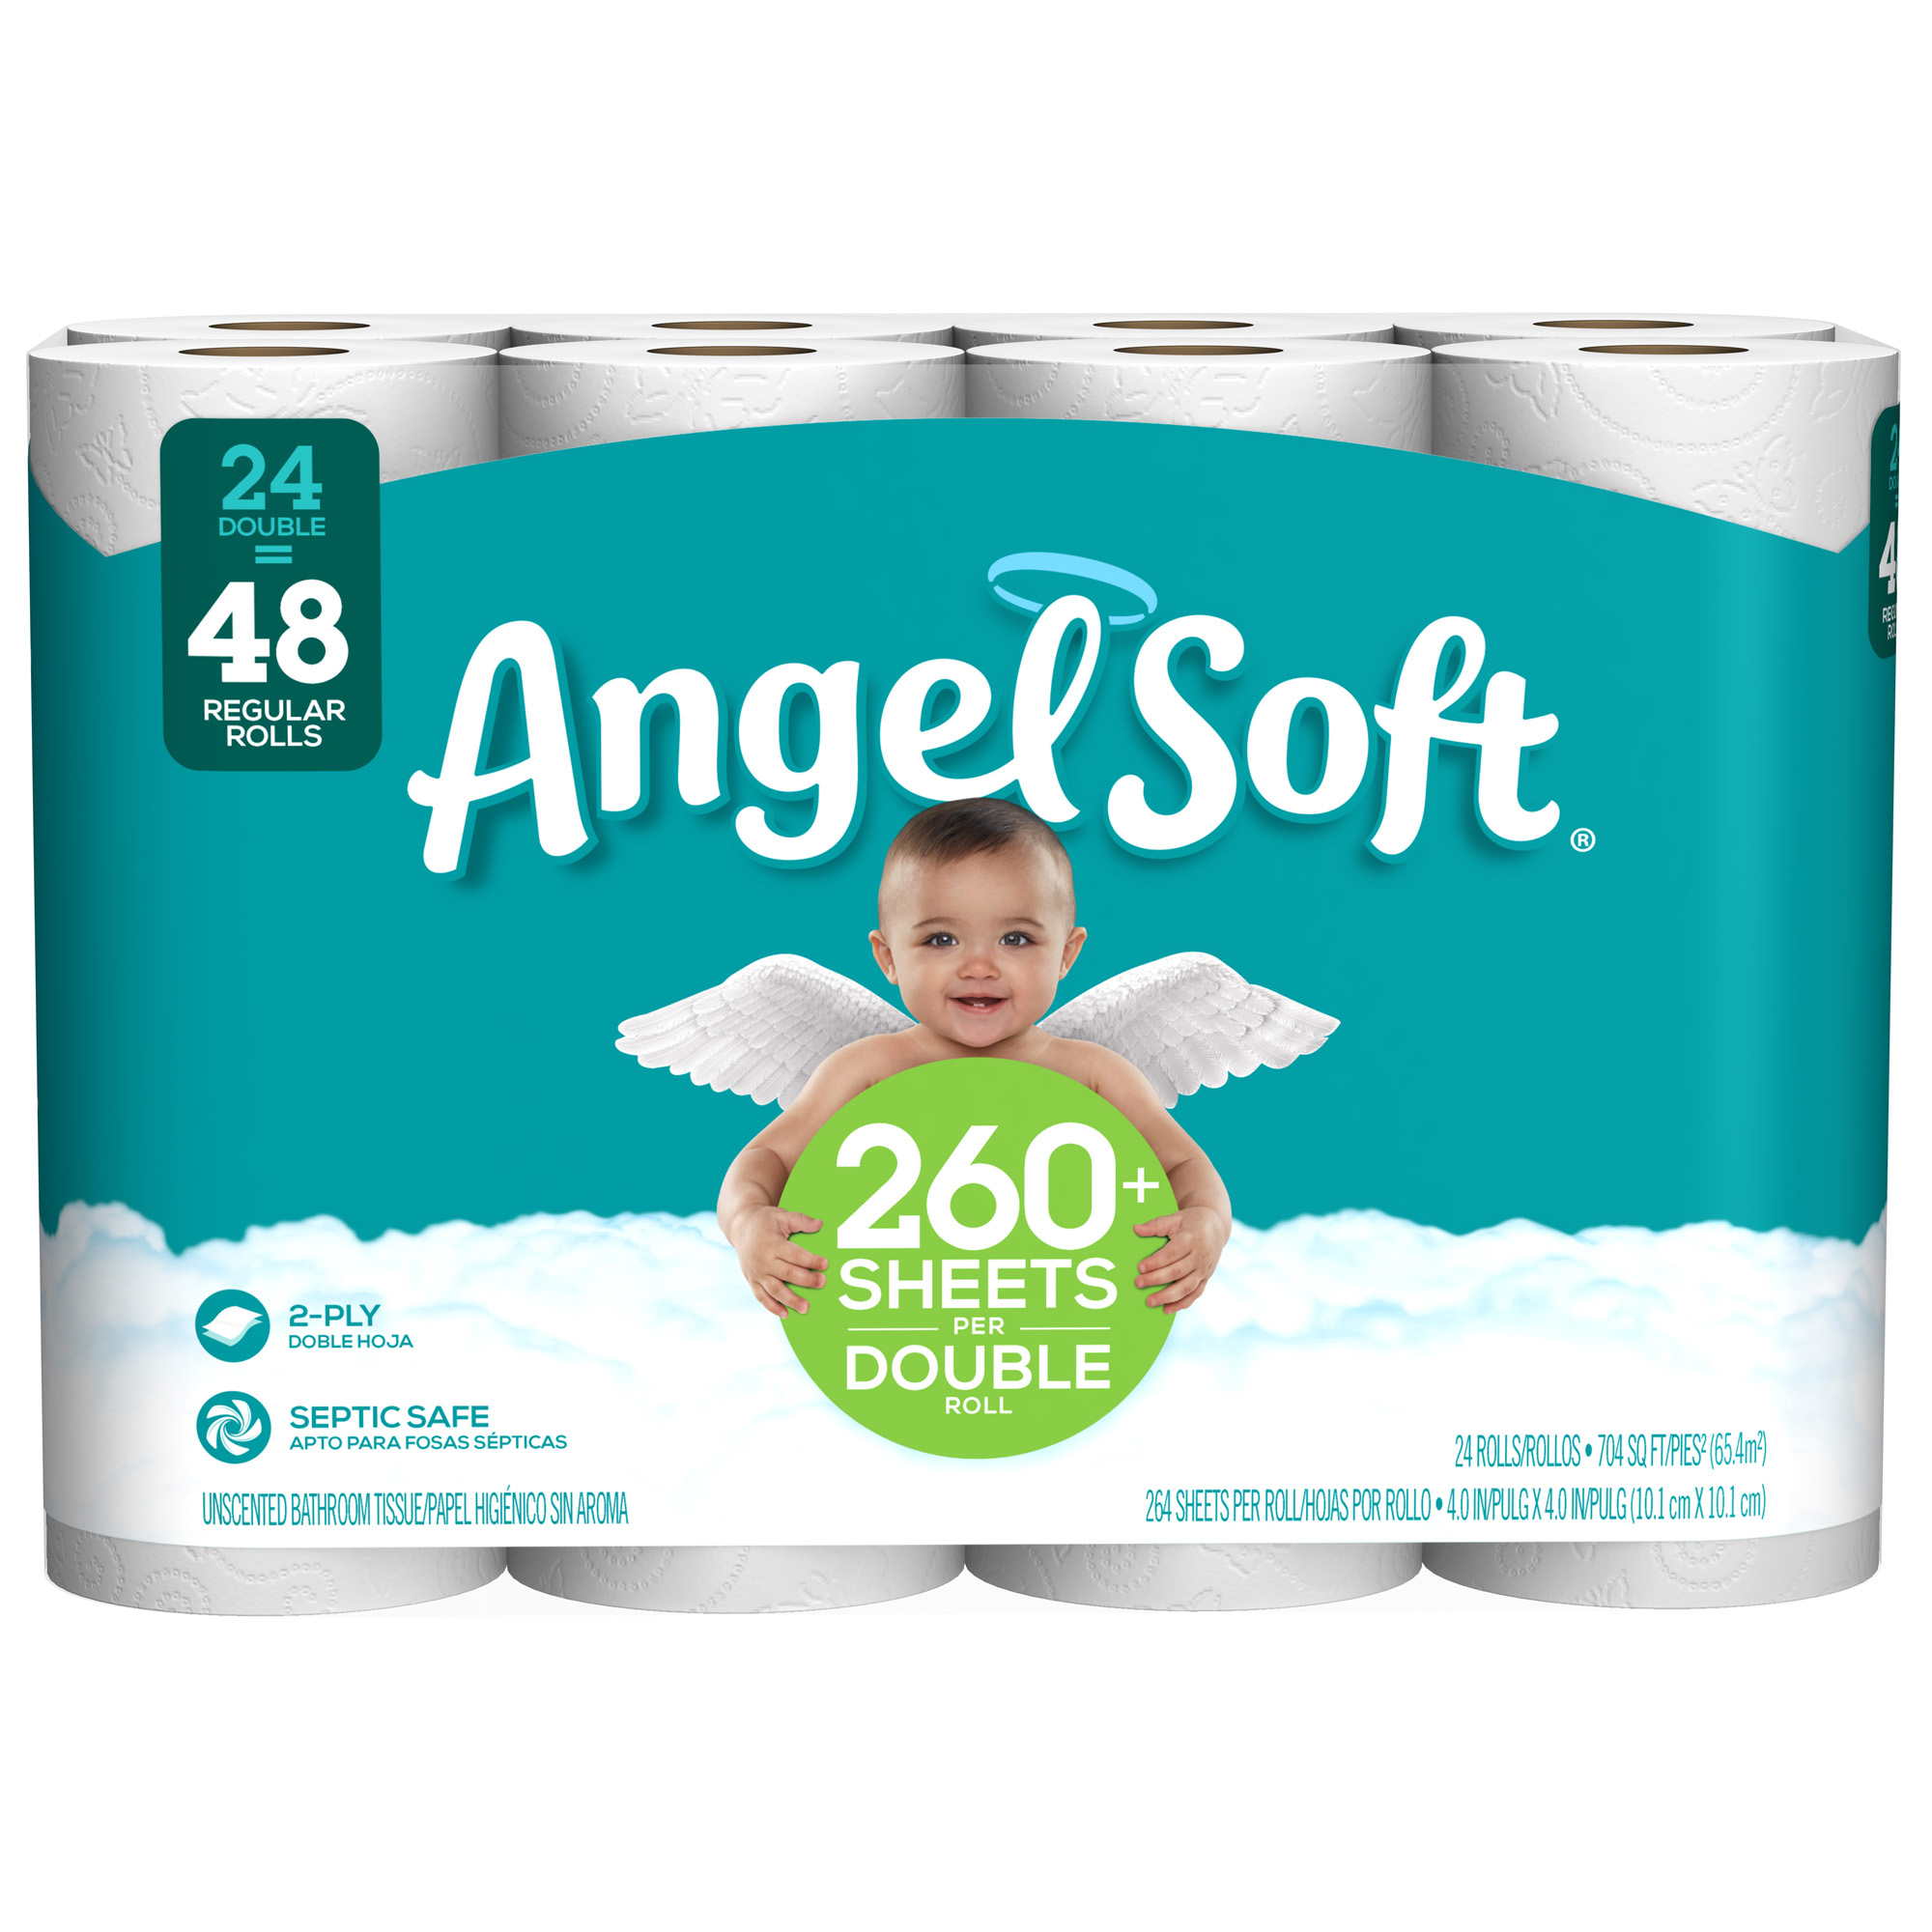 Angel Soft Toilet Paper, 24 Double Rolls